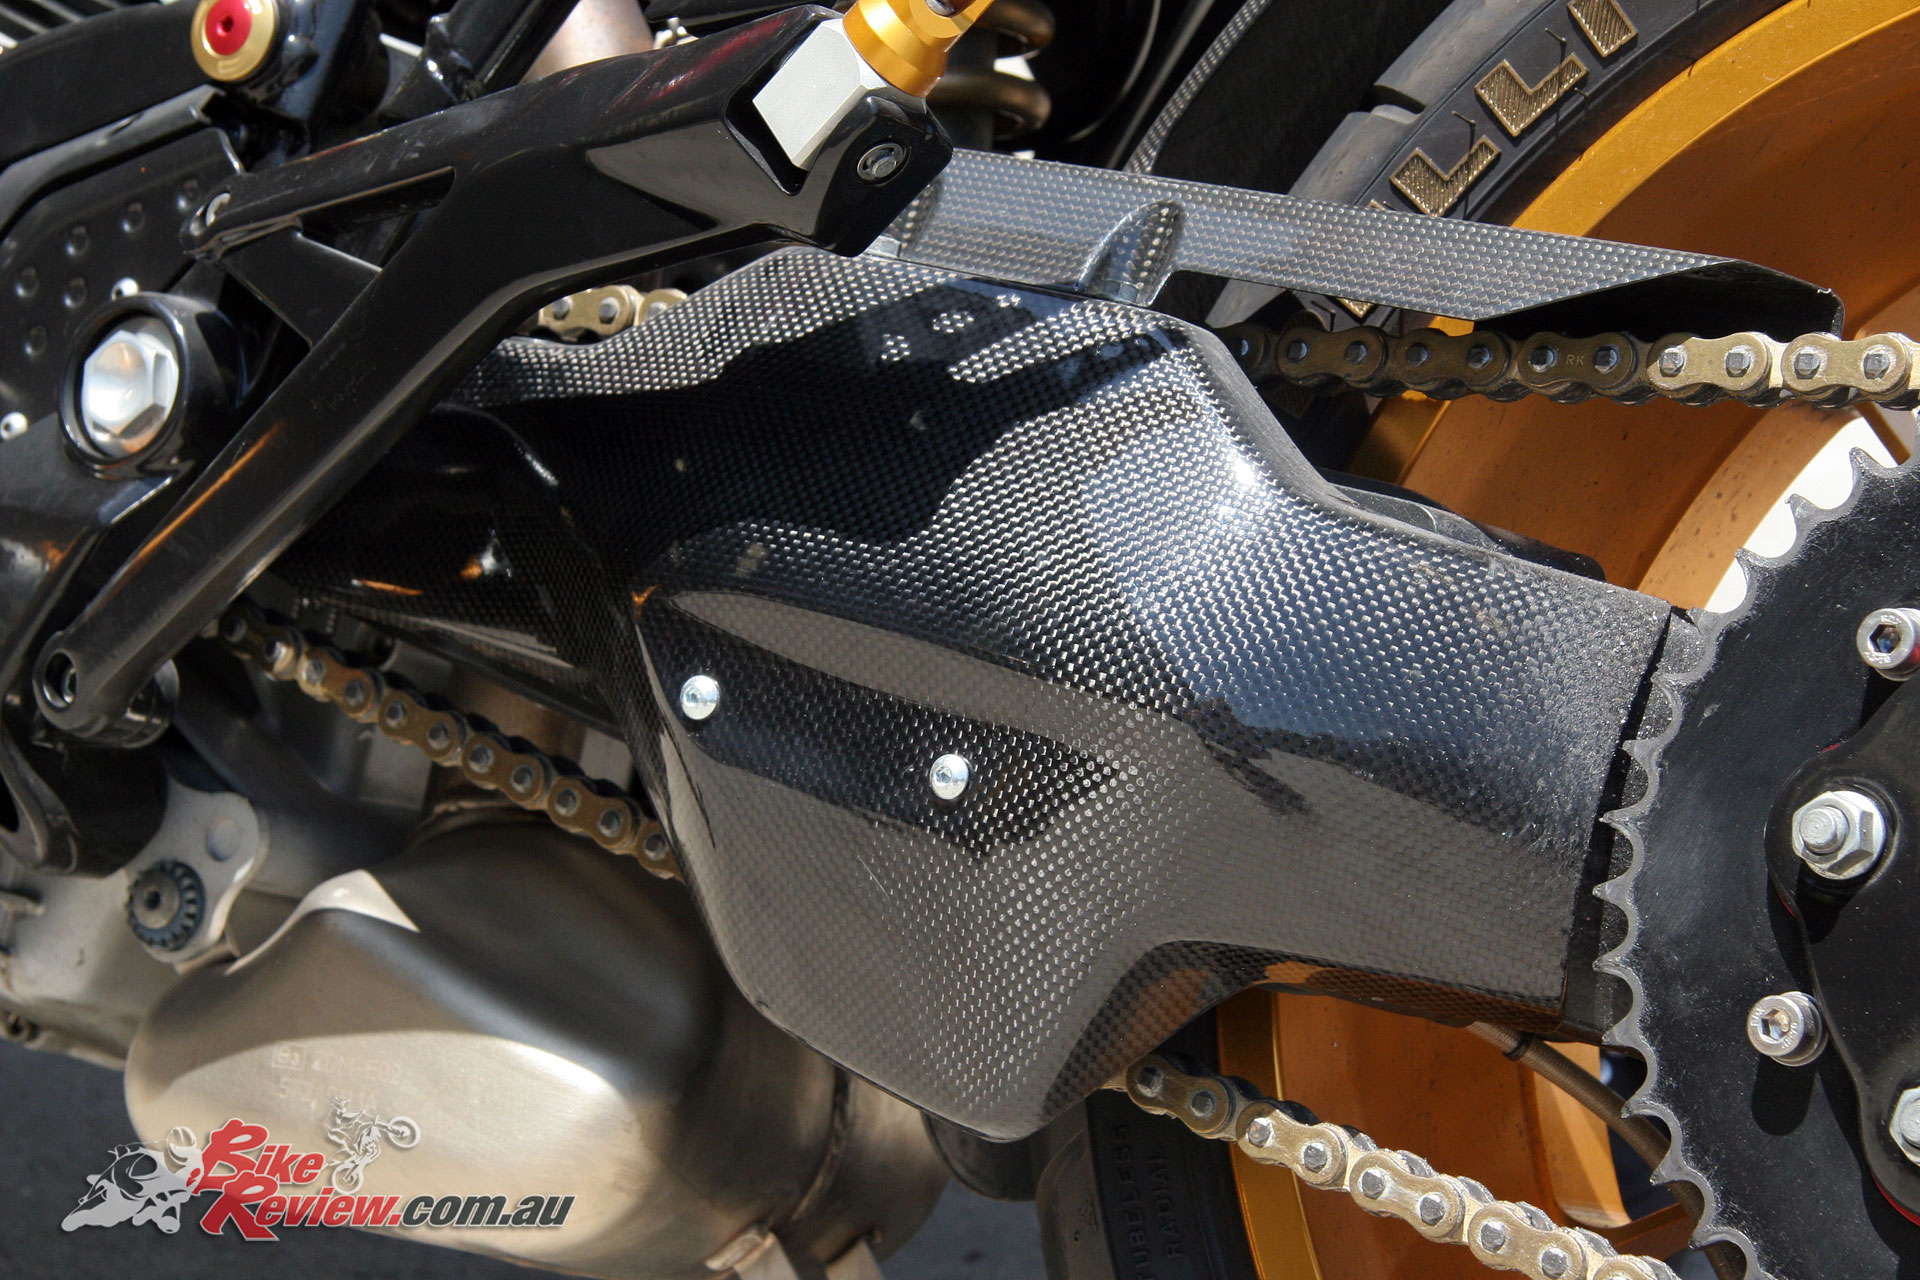 The standard swingarm was joined by a carbon-fibre cover for good effect